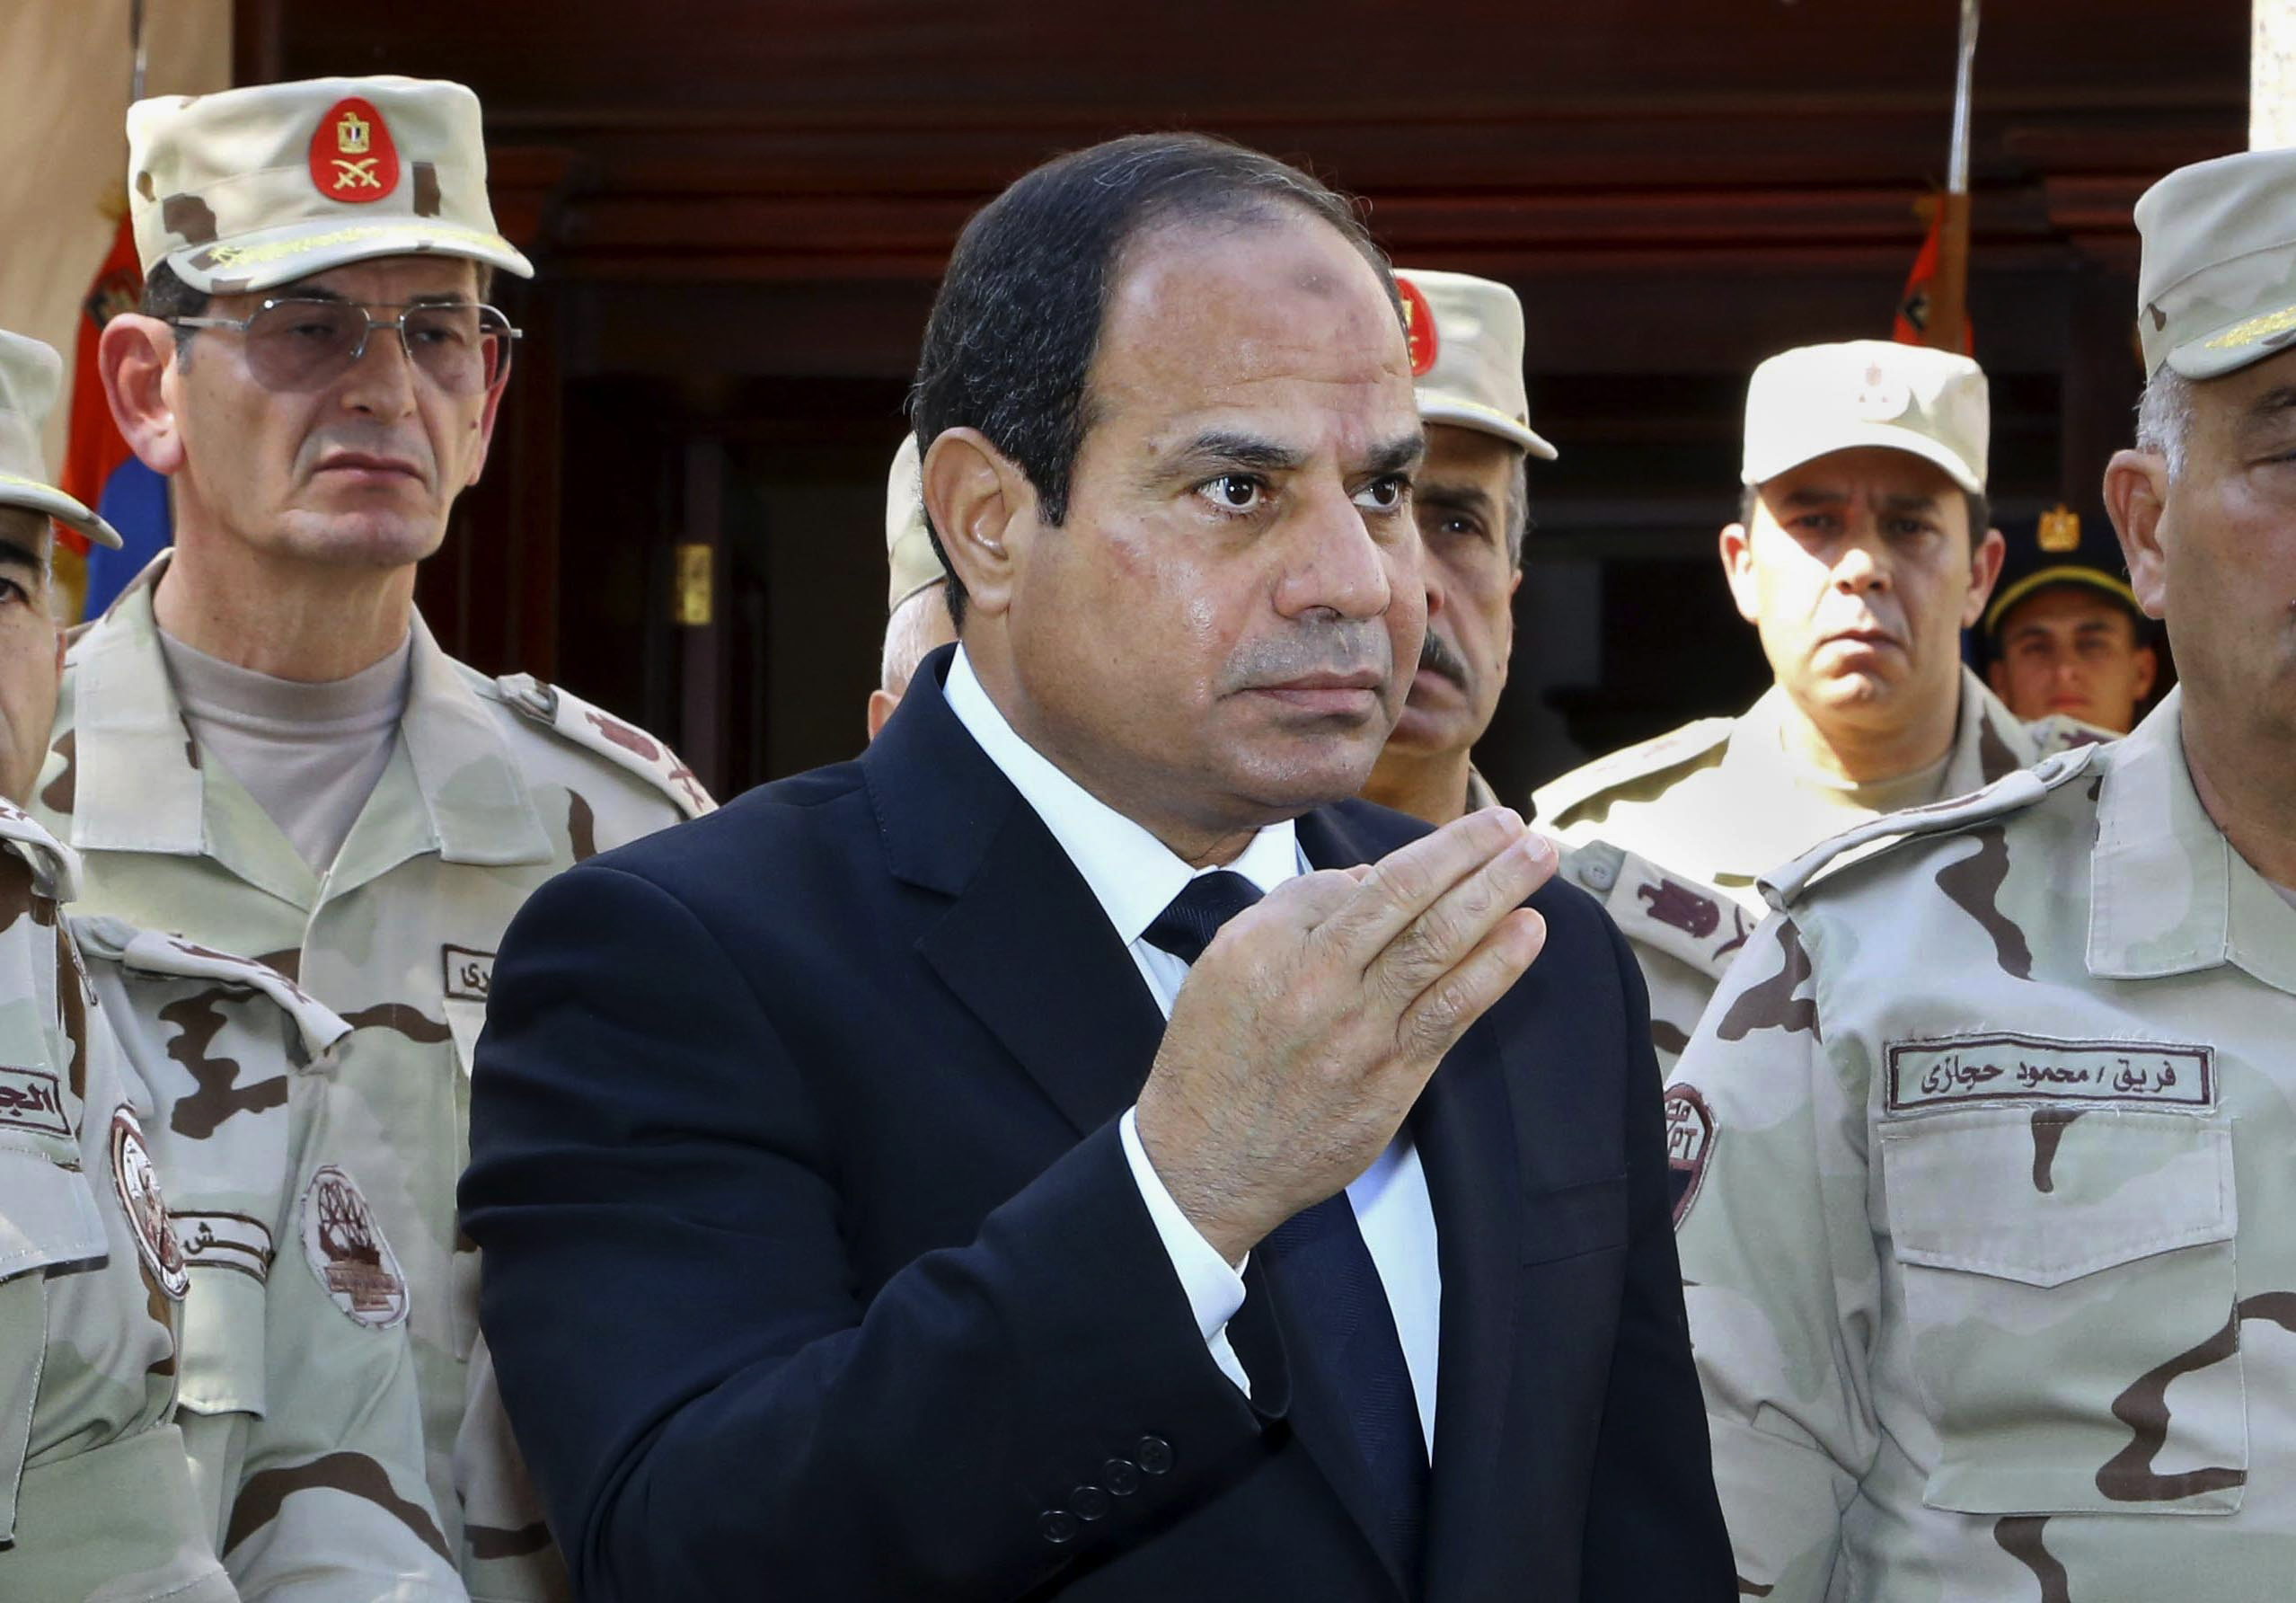 Egypt leader: 'Foreign hands' behind Sinai attack